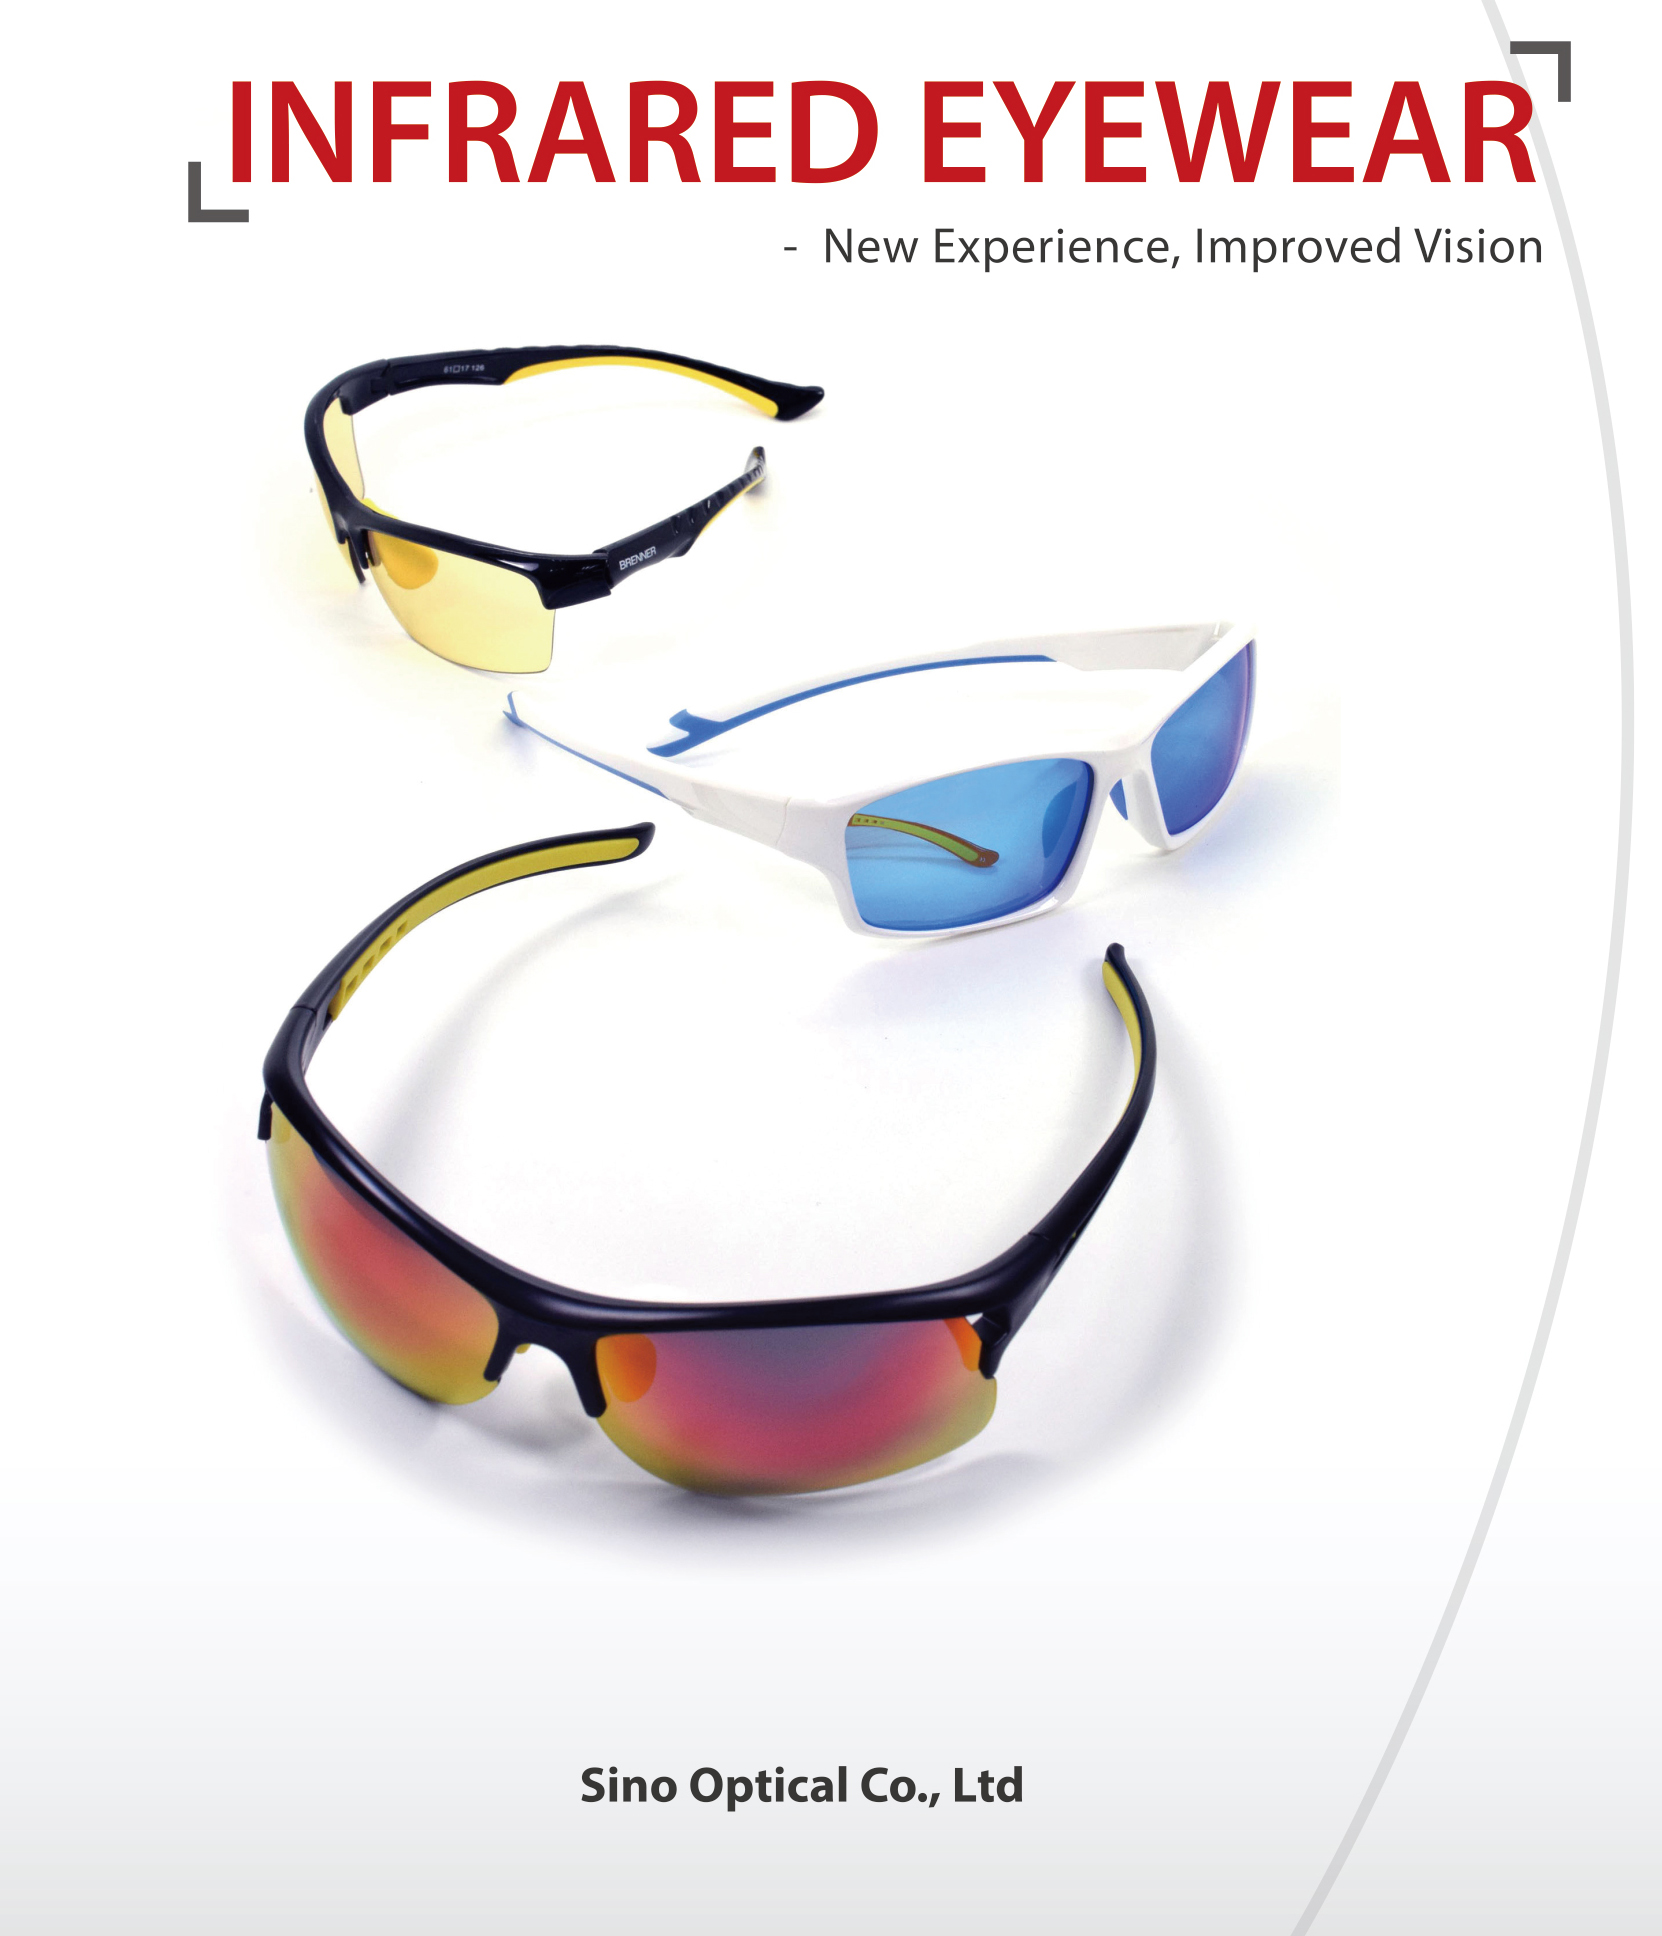 Innovation: Infrared Energy Eyewear